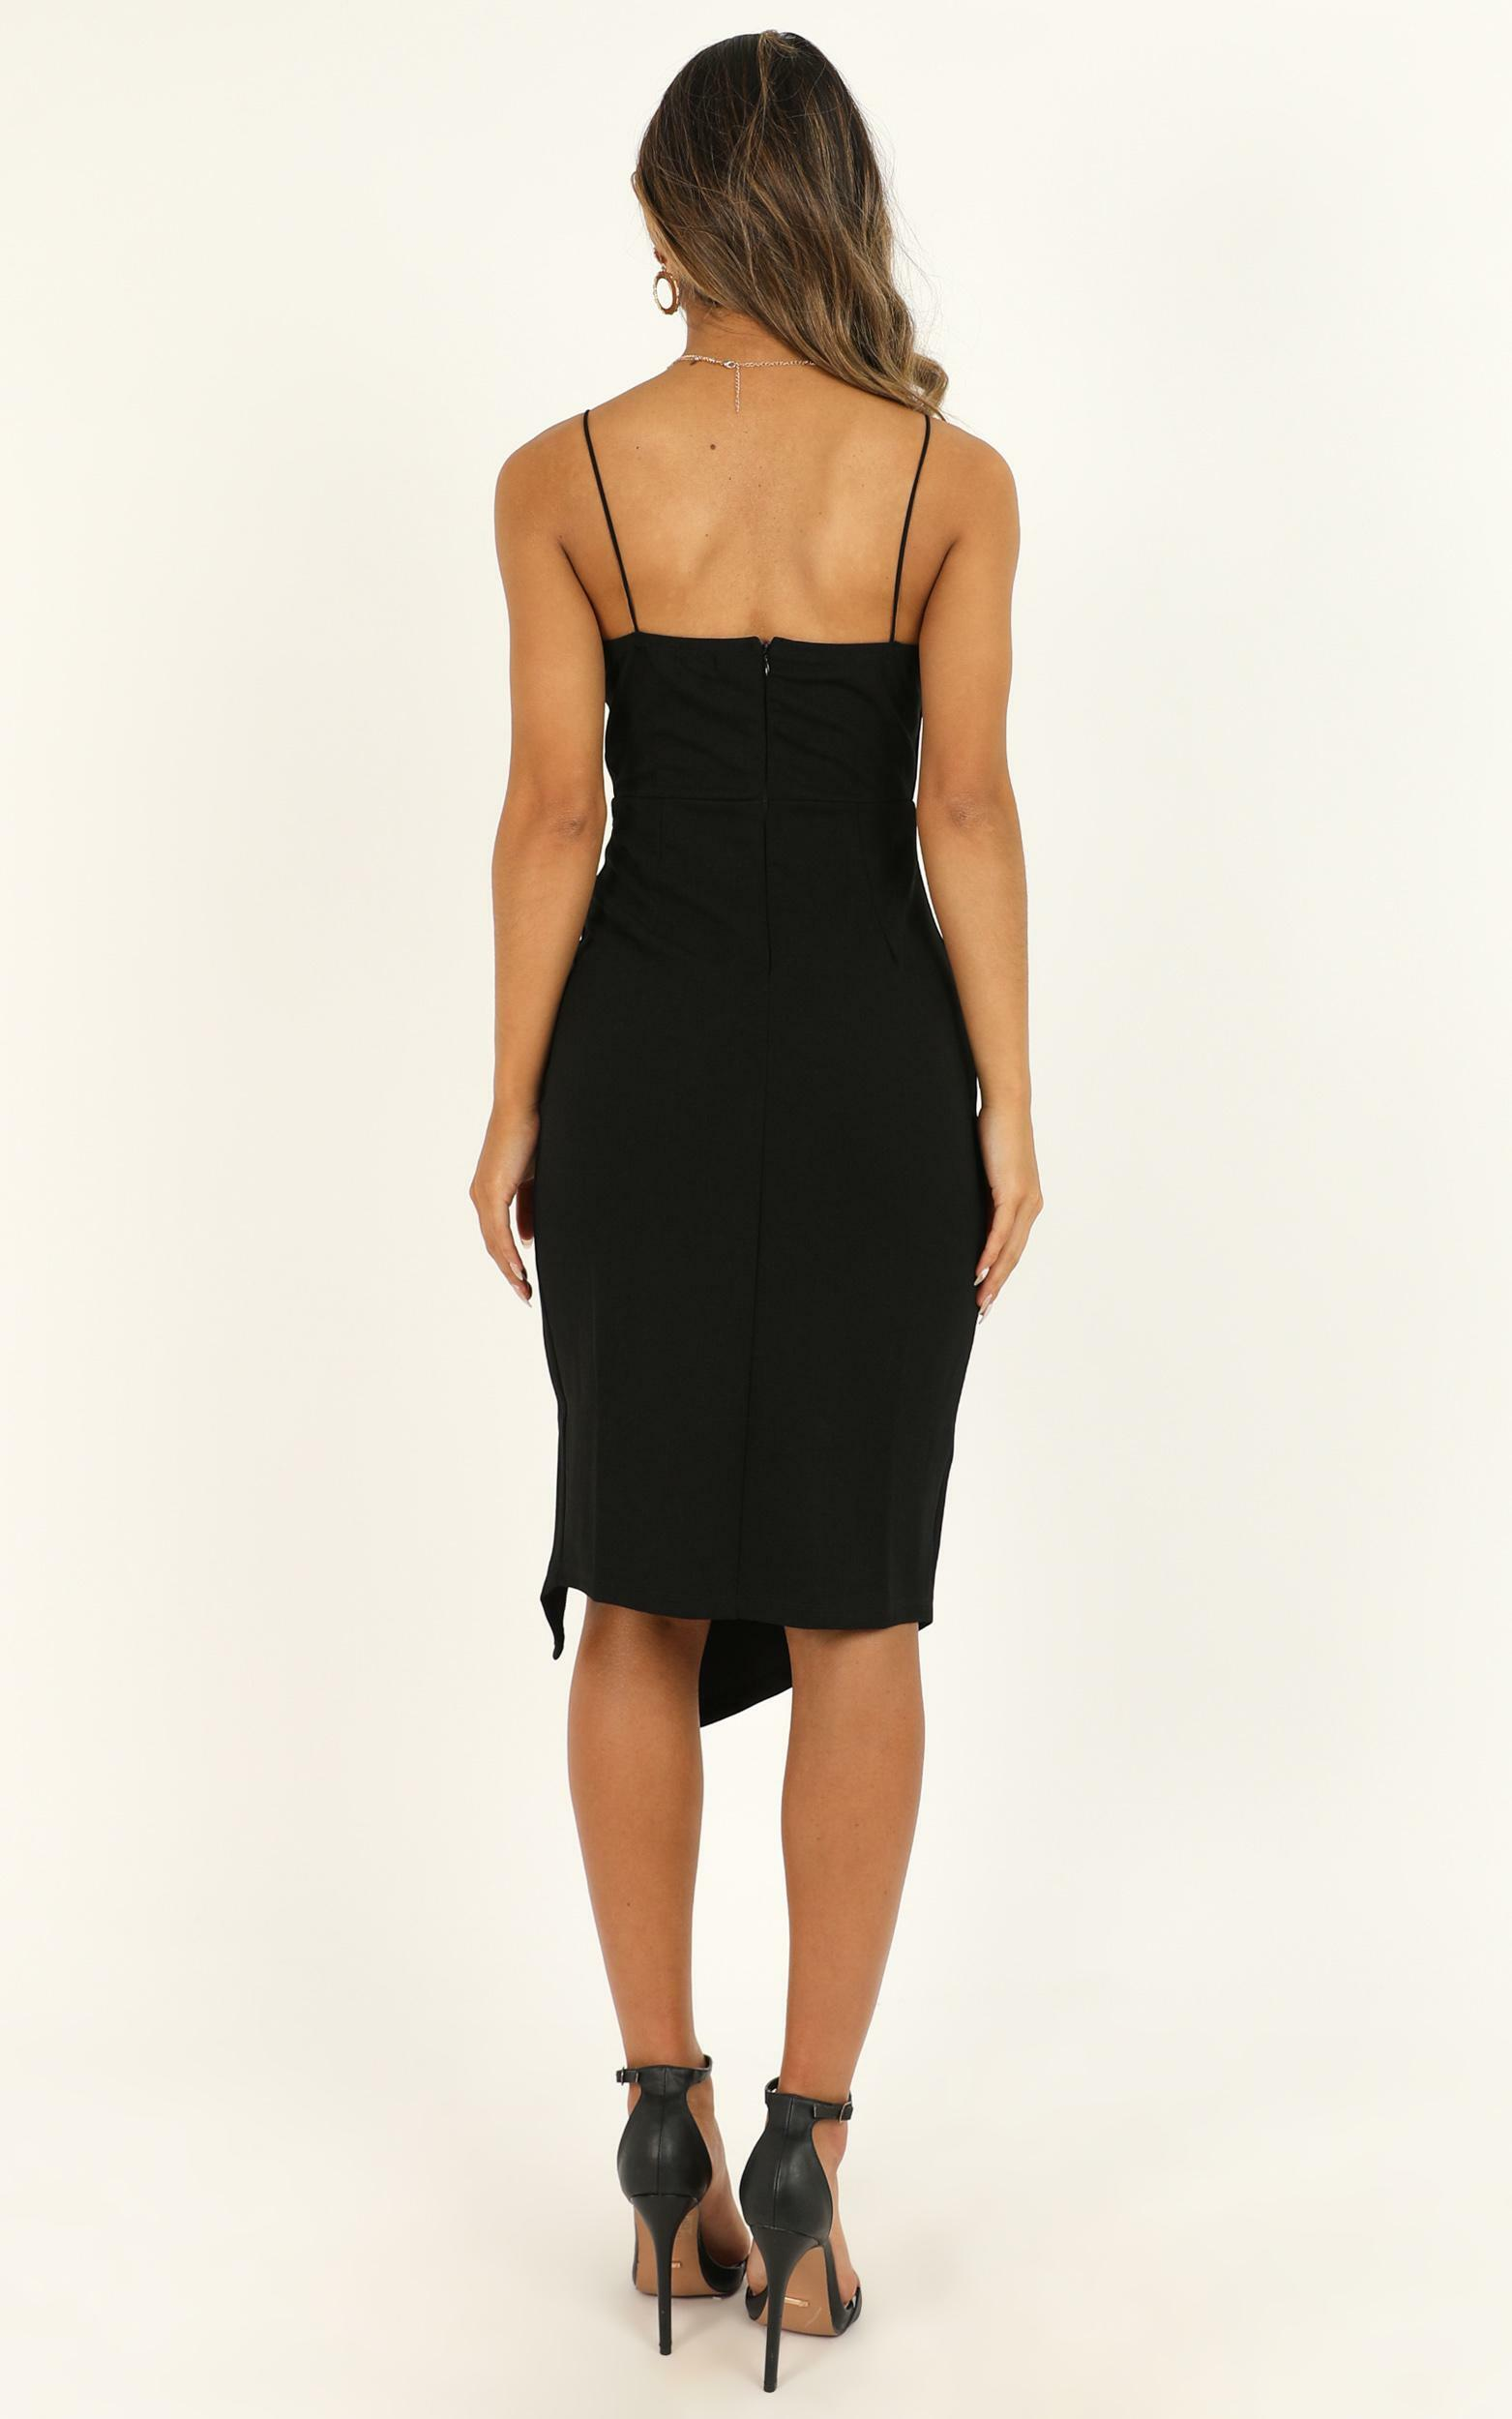 Life Changing Dress In Black - 4 (XXS), Black, hi-res image number null